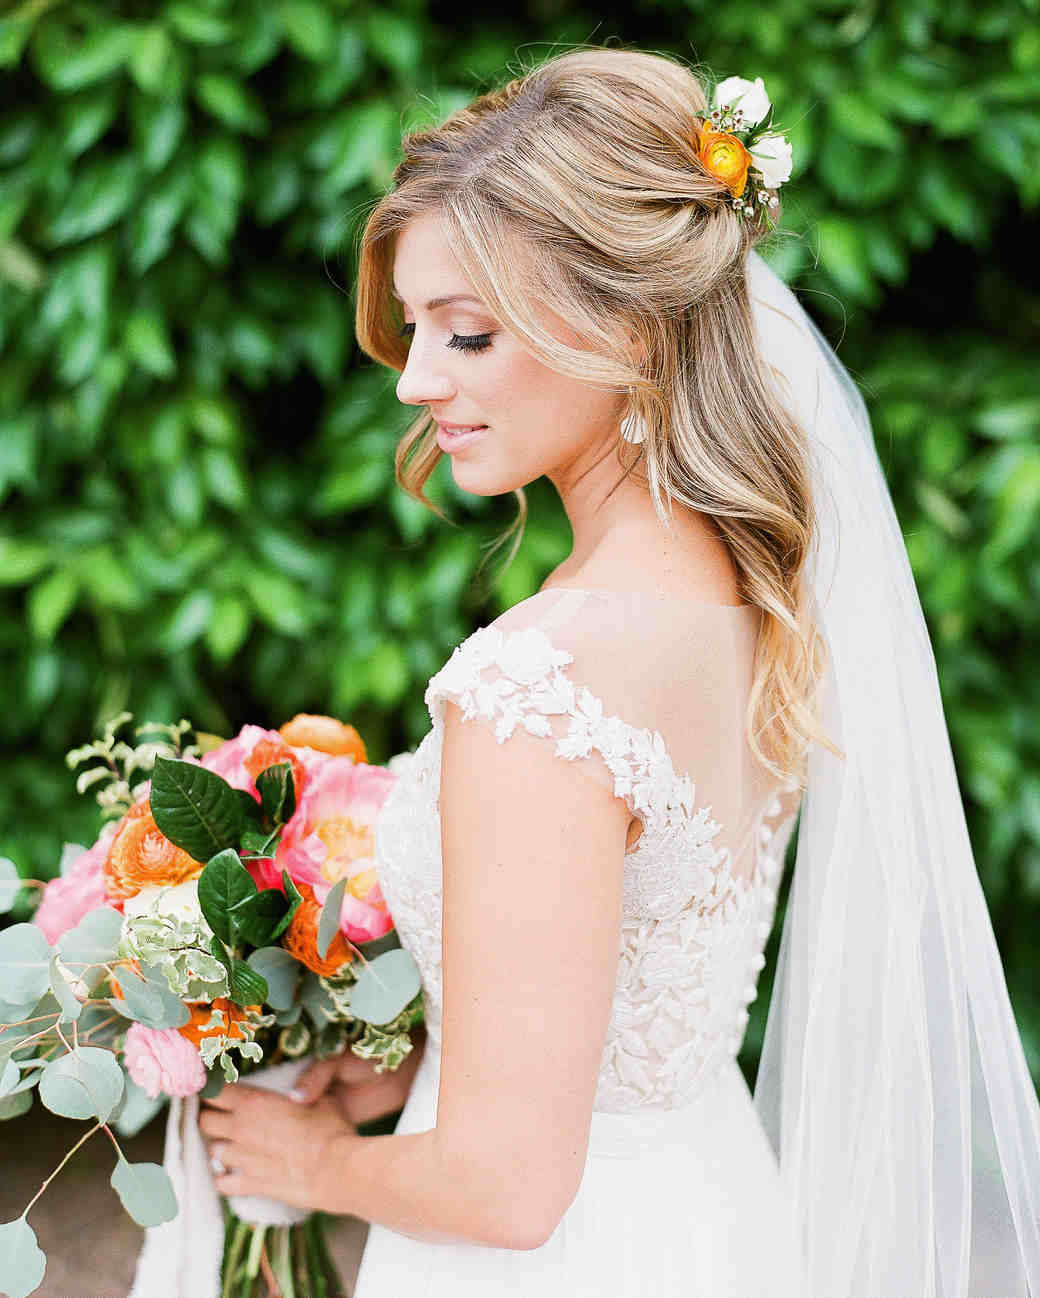 Wedding Hair Style Video: 28 Half-Up, Half-Down Wedding Hairstyles We Love